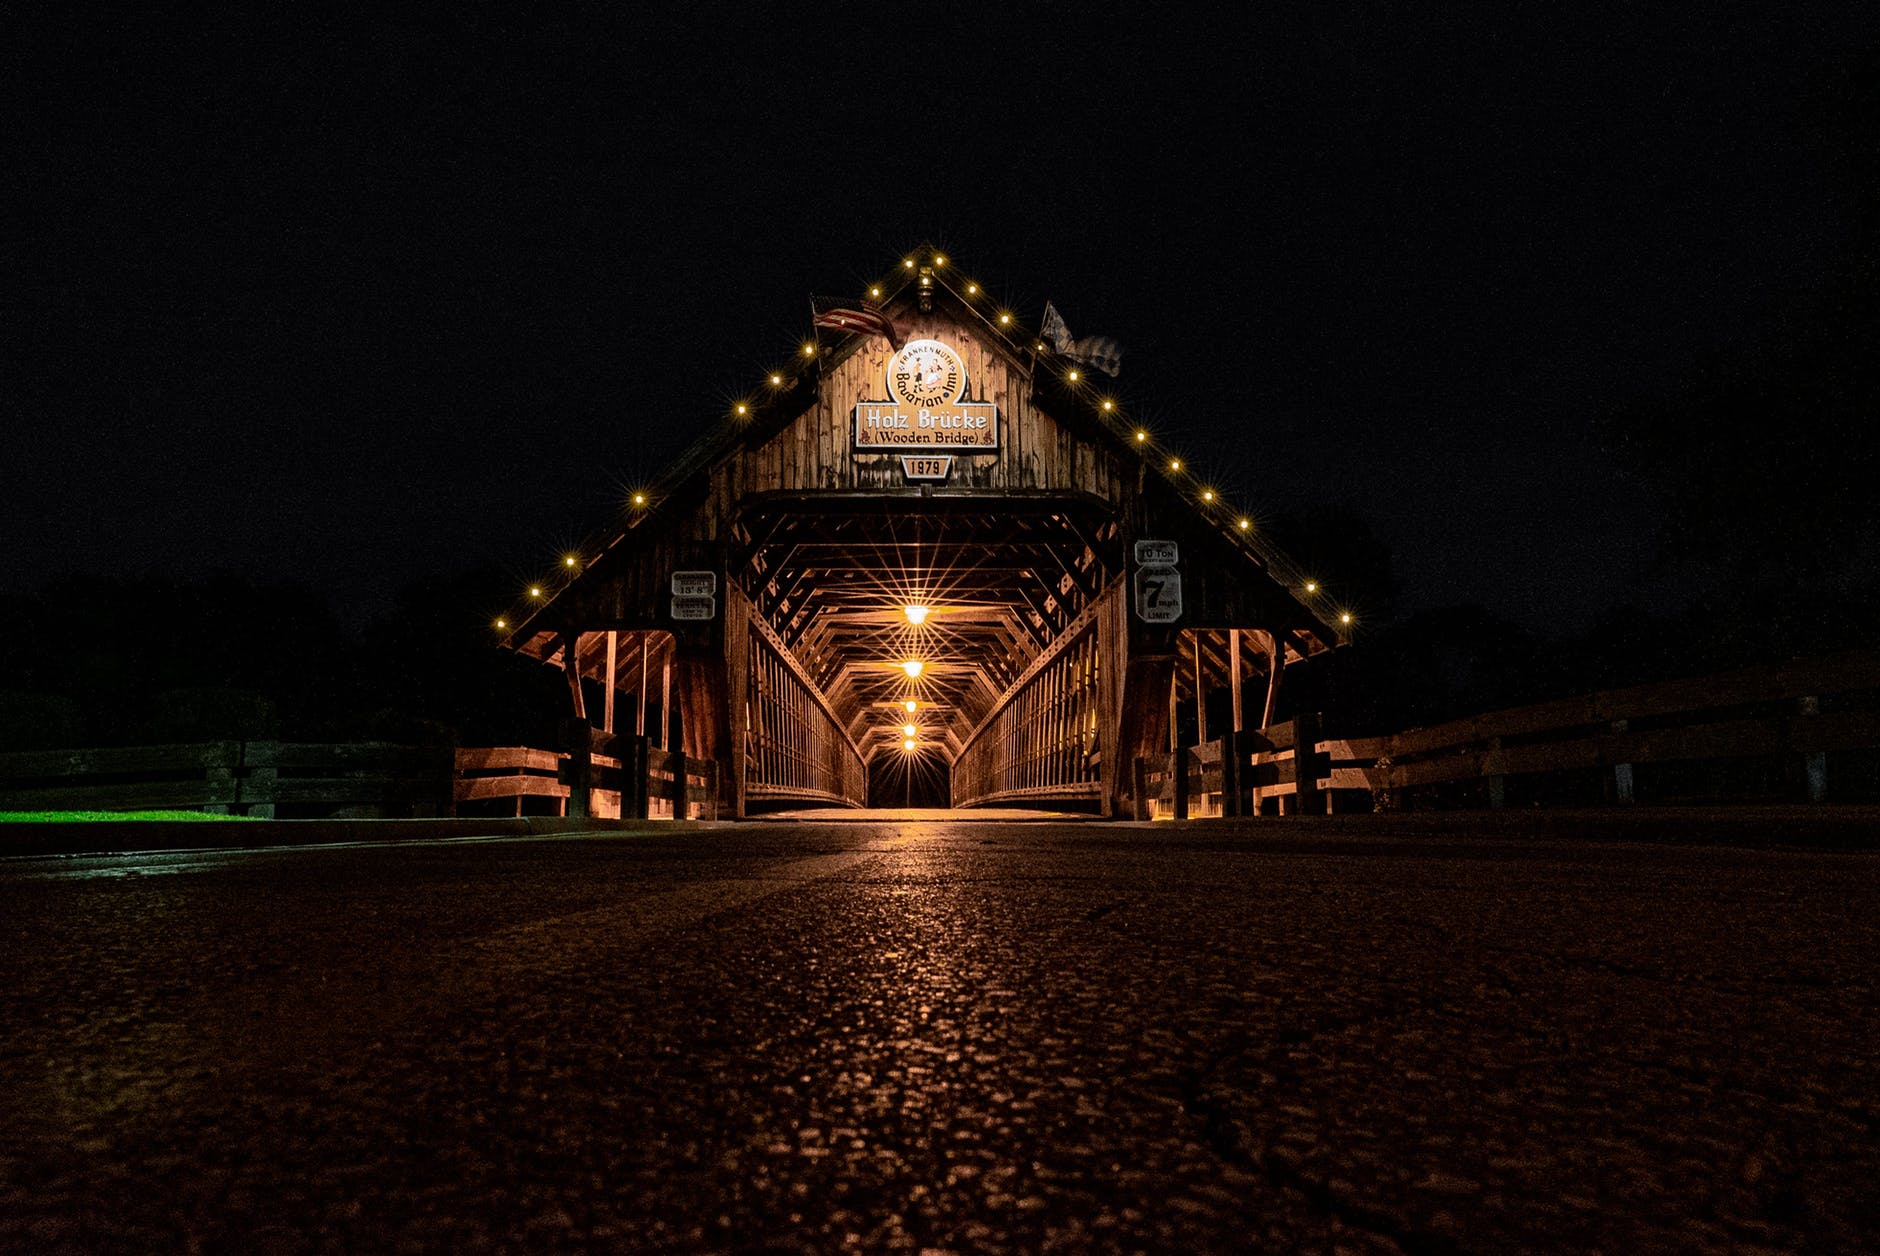 Covered Bridge Festival | Things To Do Near Hocking College this September